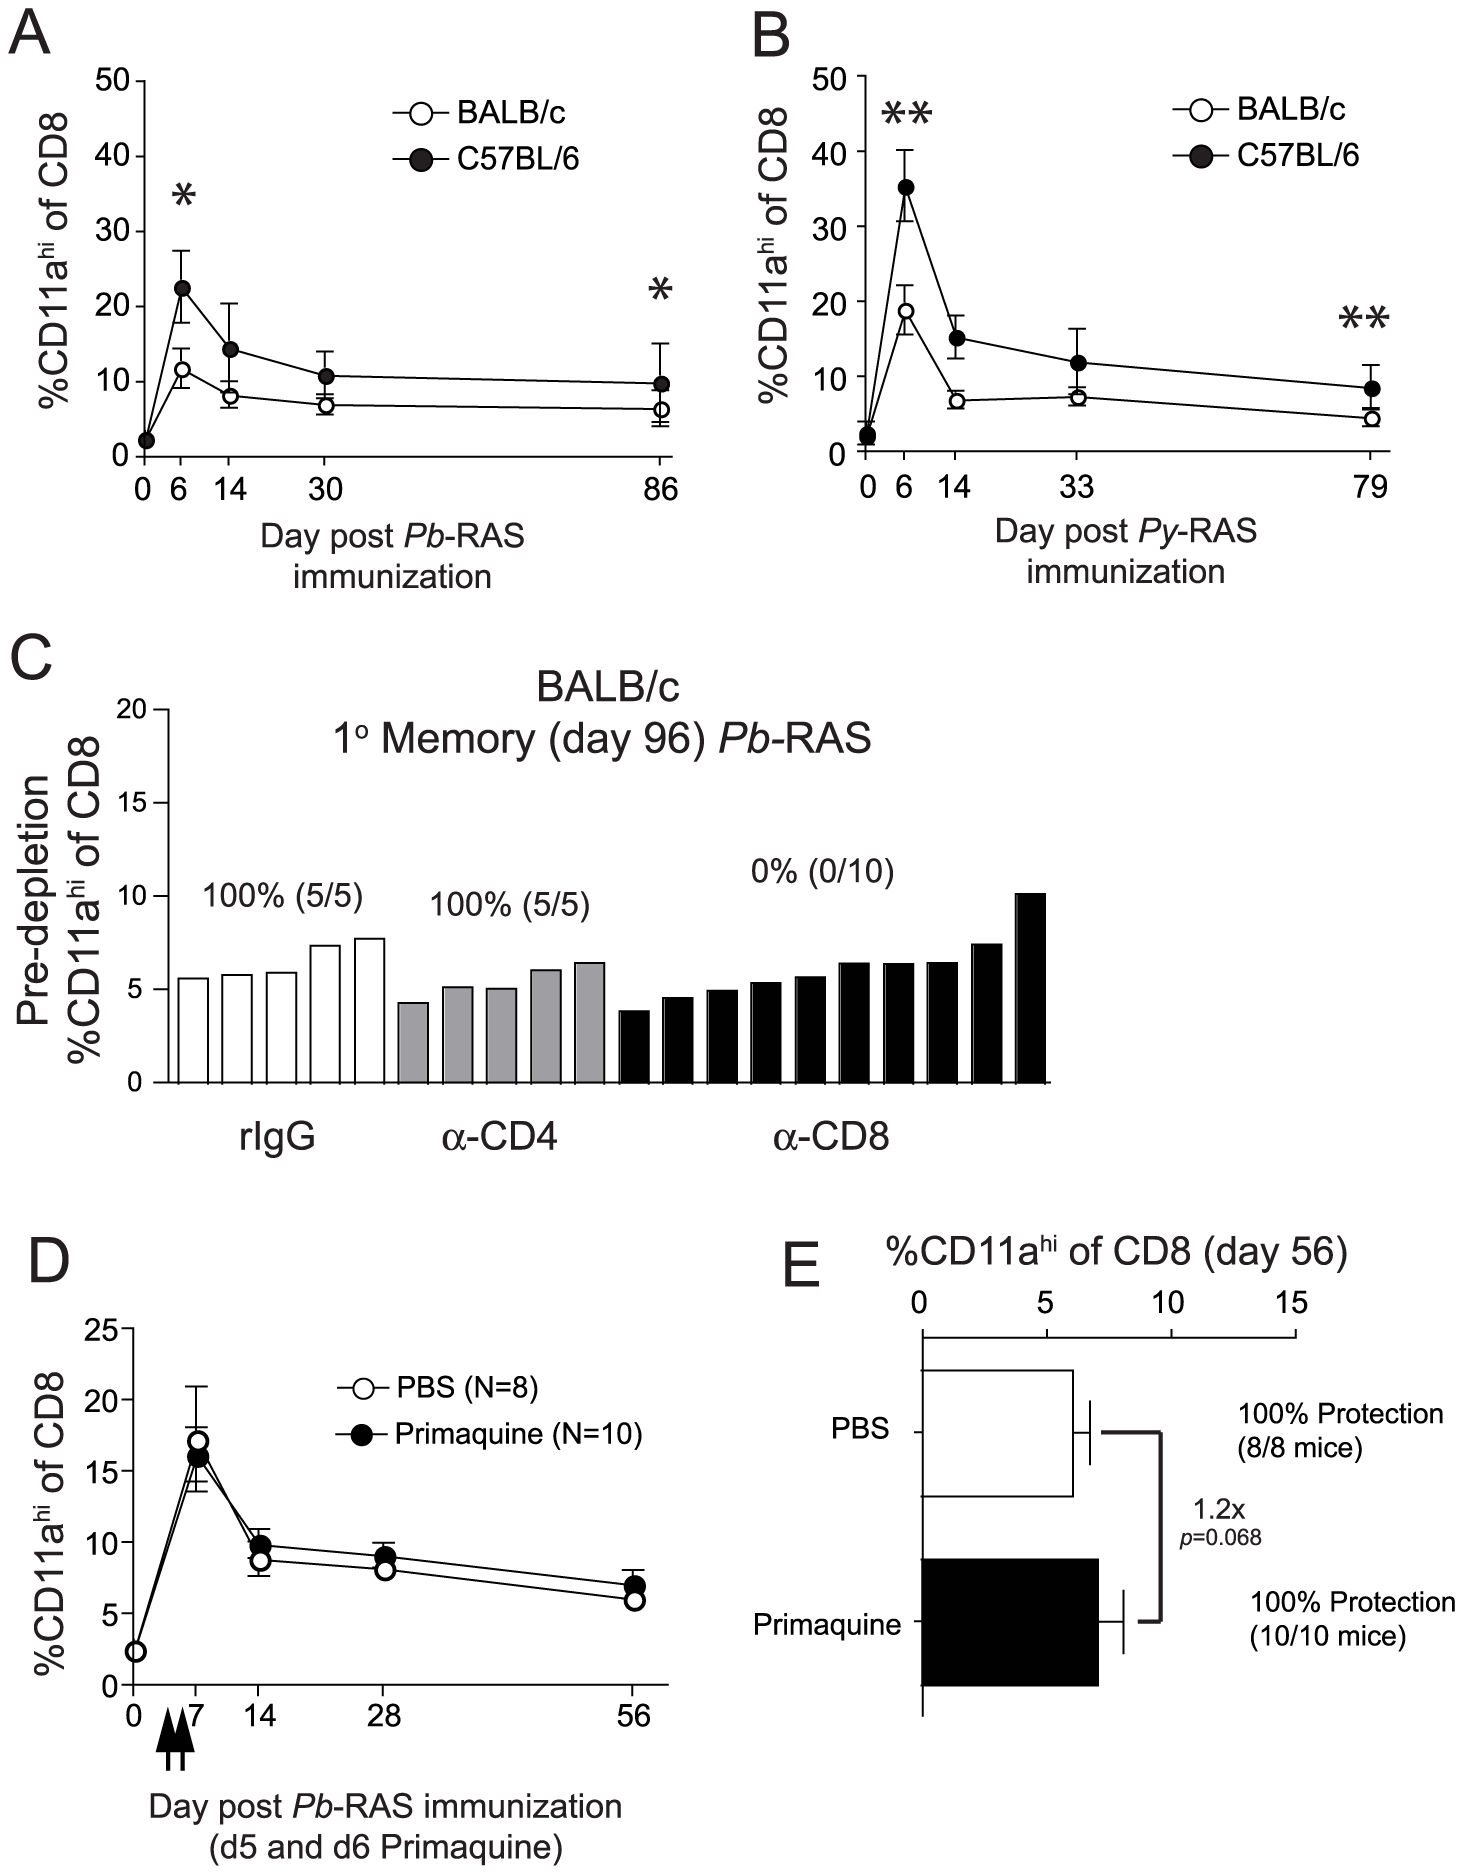 The magnitude and kinetics of RAS-vaccination-induced CD8 T cell responses in BALB/c and C57BL/6 inbred mice.